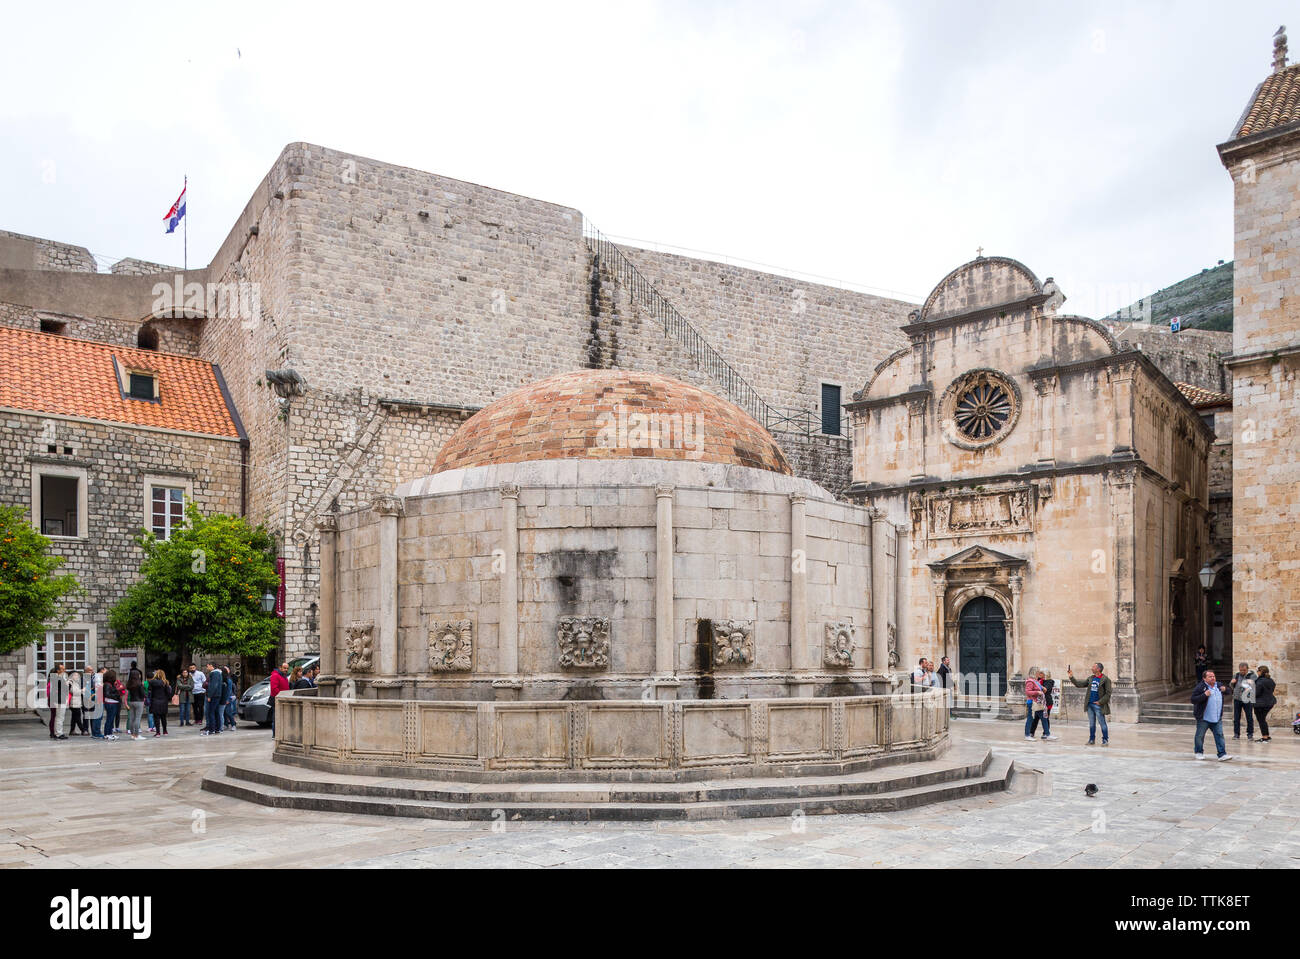 03 May 2019, Dubrovnik, Croatia. Old city architecture. Onofrio's Fountains - Stock Image